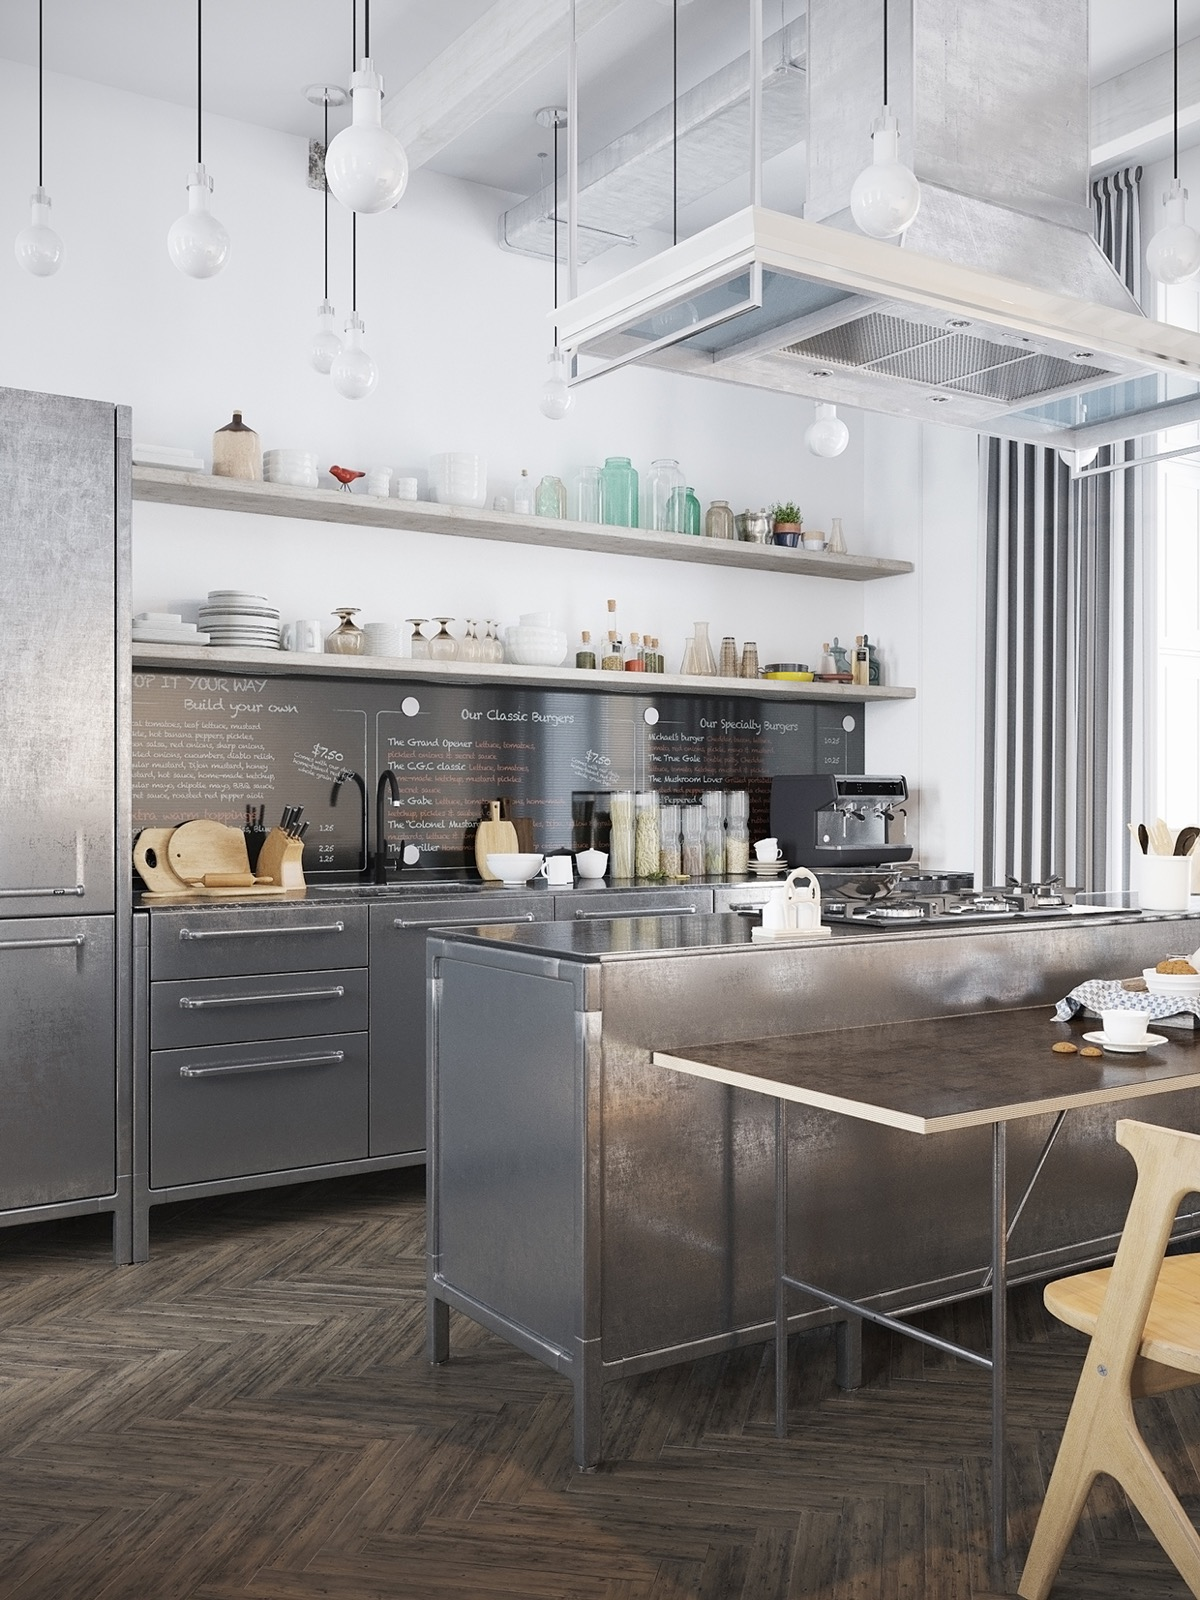 industrial-kitchen-chrome-cabinets-wooden-open-shelving